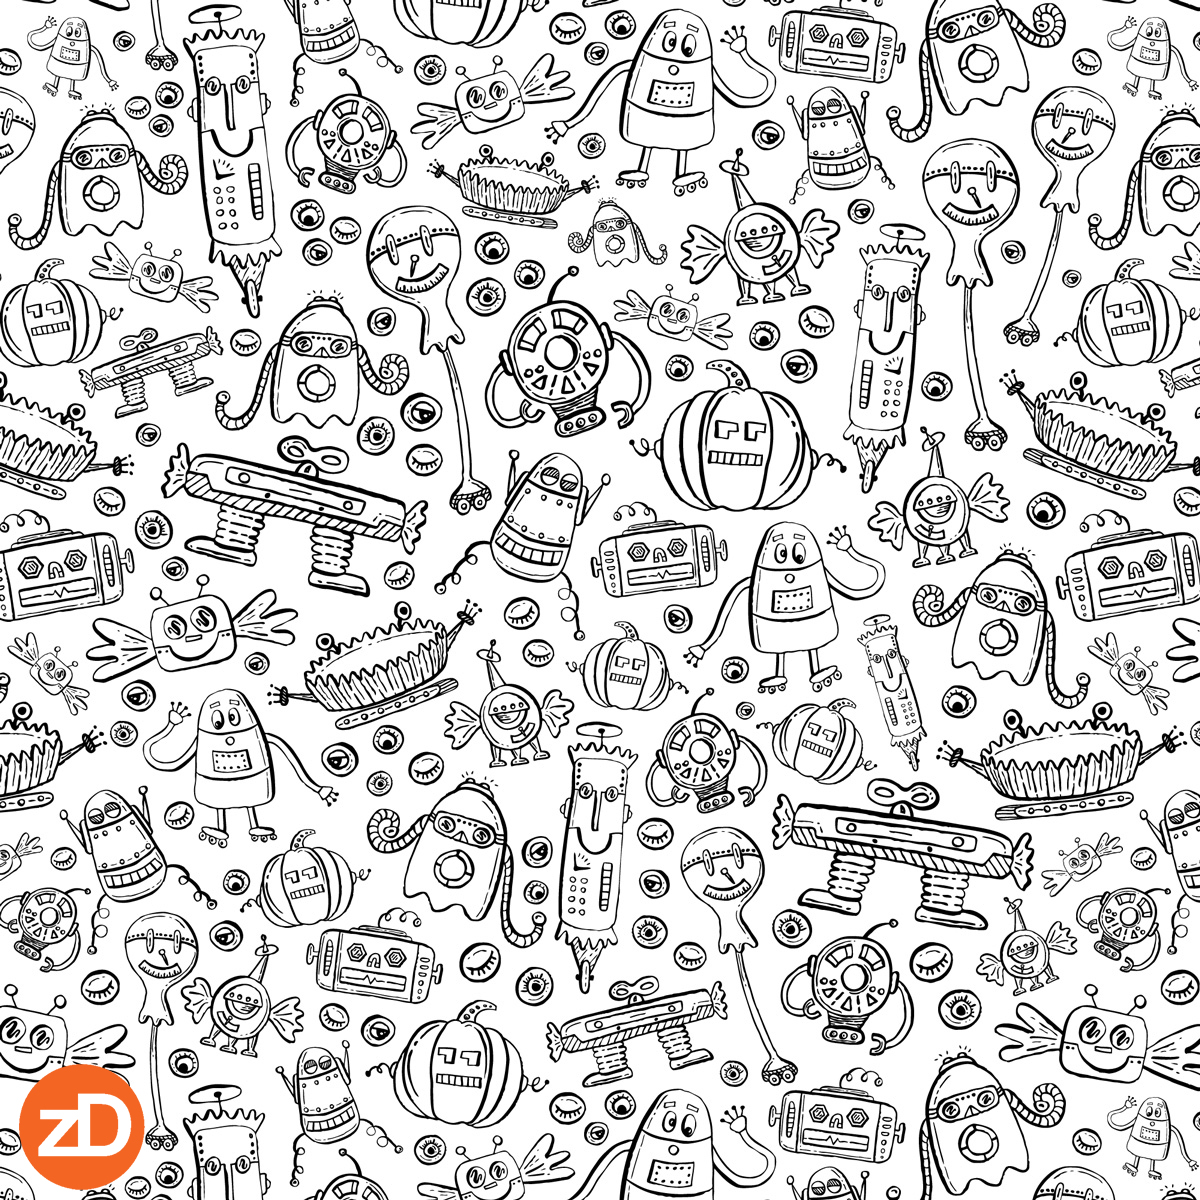 Zirkus Design | Halloween Candy Robots Collection - Black and White Coloring Book Fabric